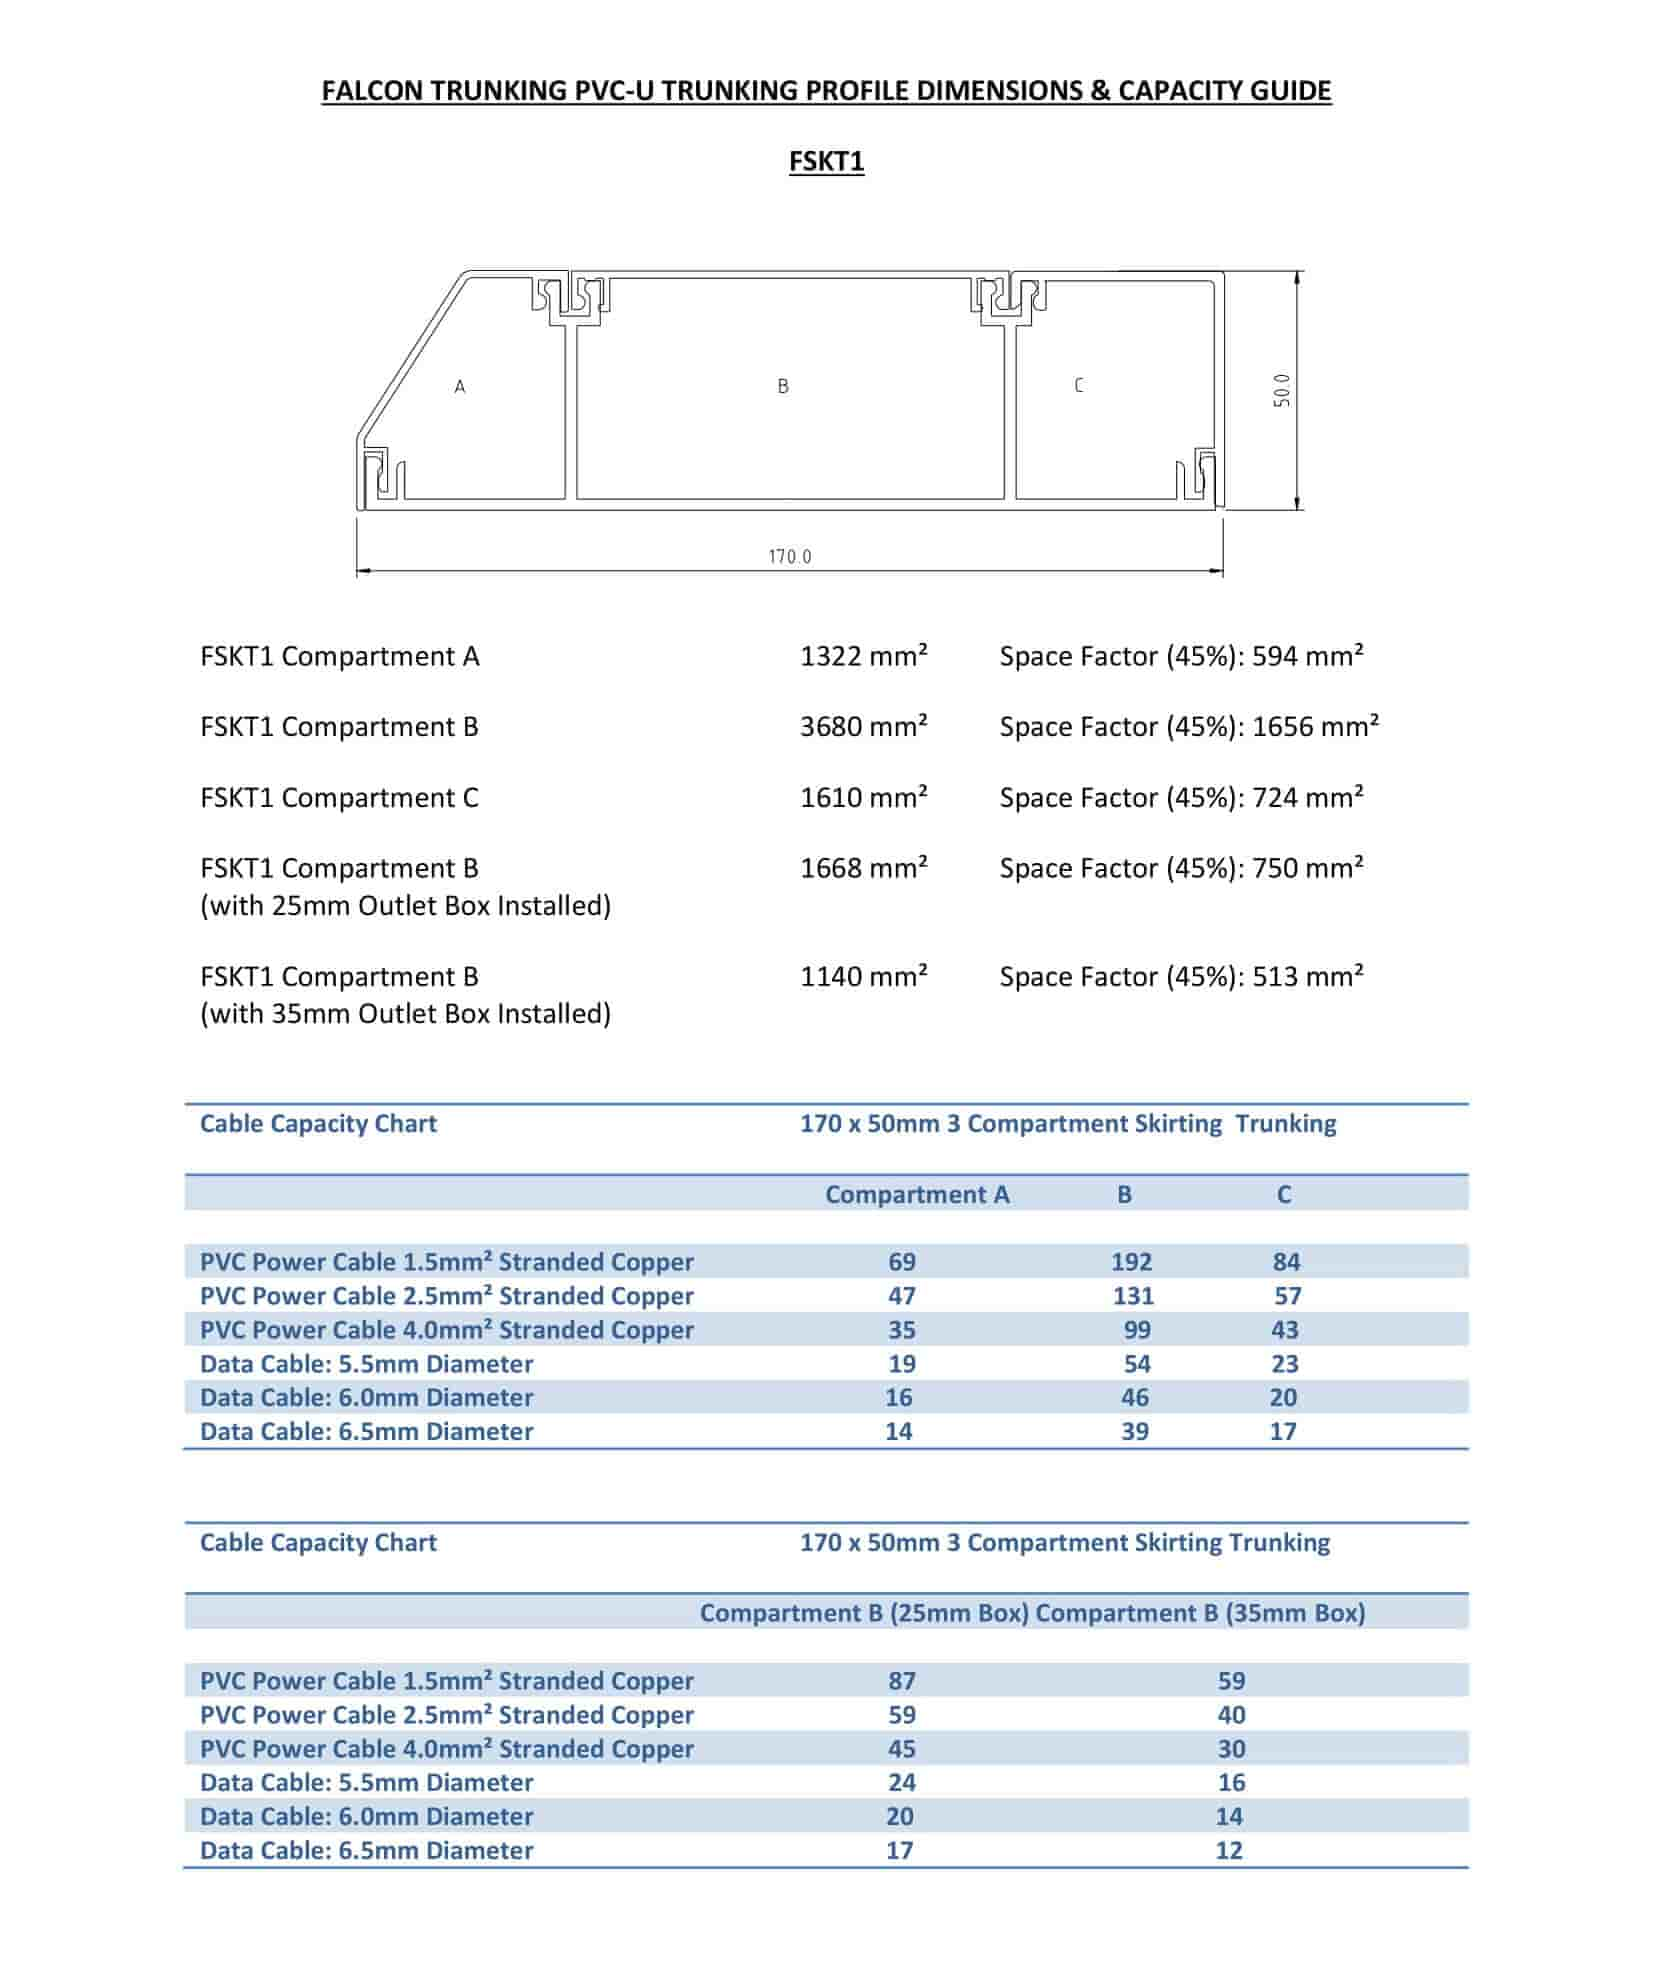 Merlin FSKT1 Cable Skirting Capacities for Cable Management Systems at Falcon Trunking.